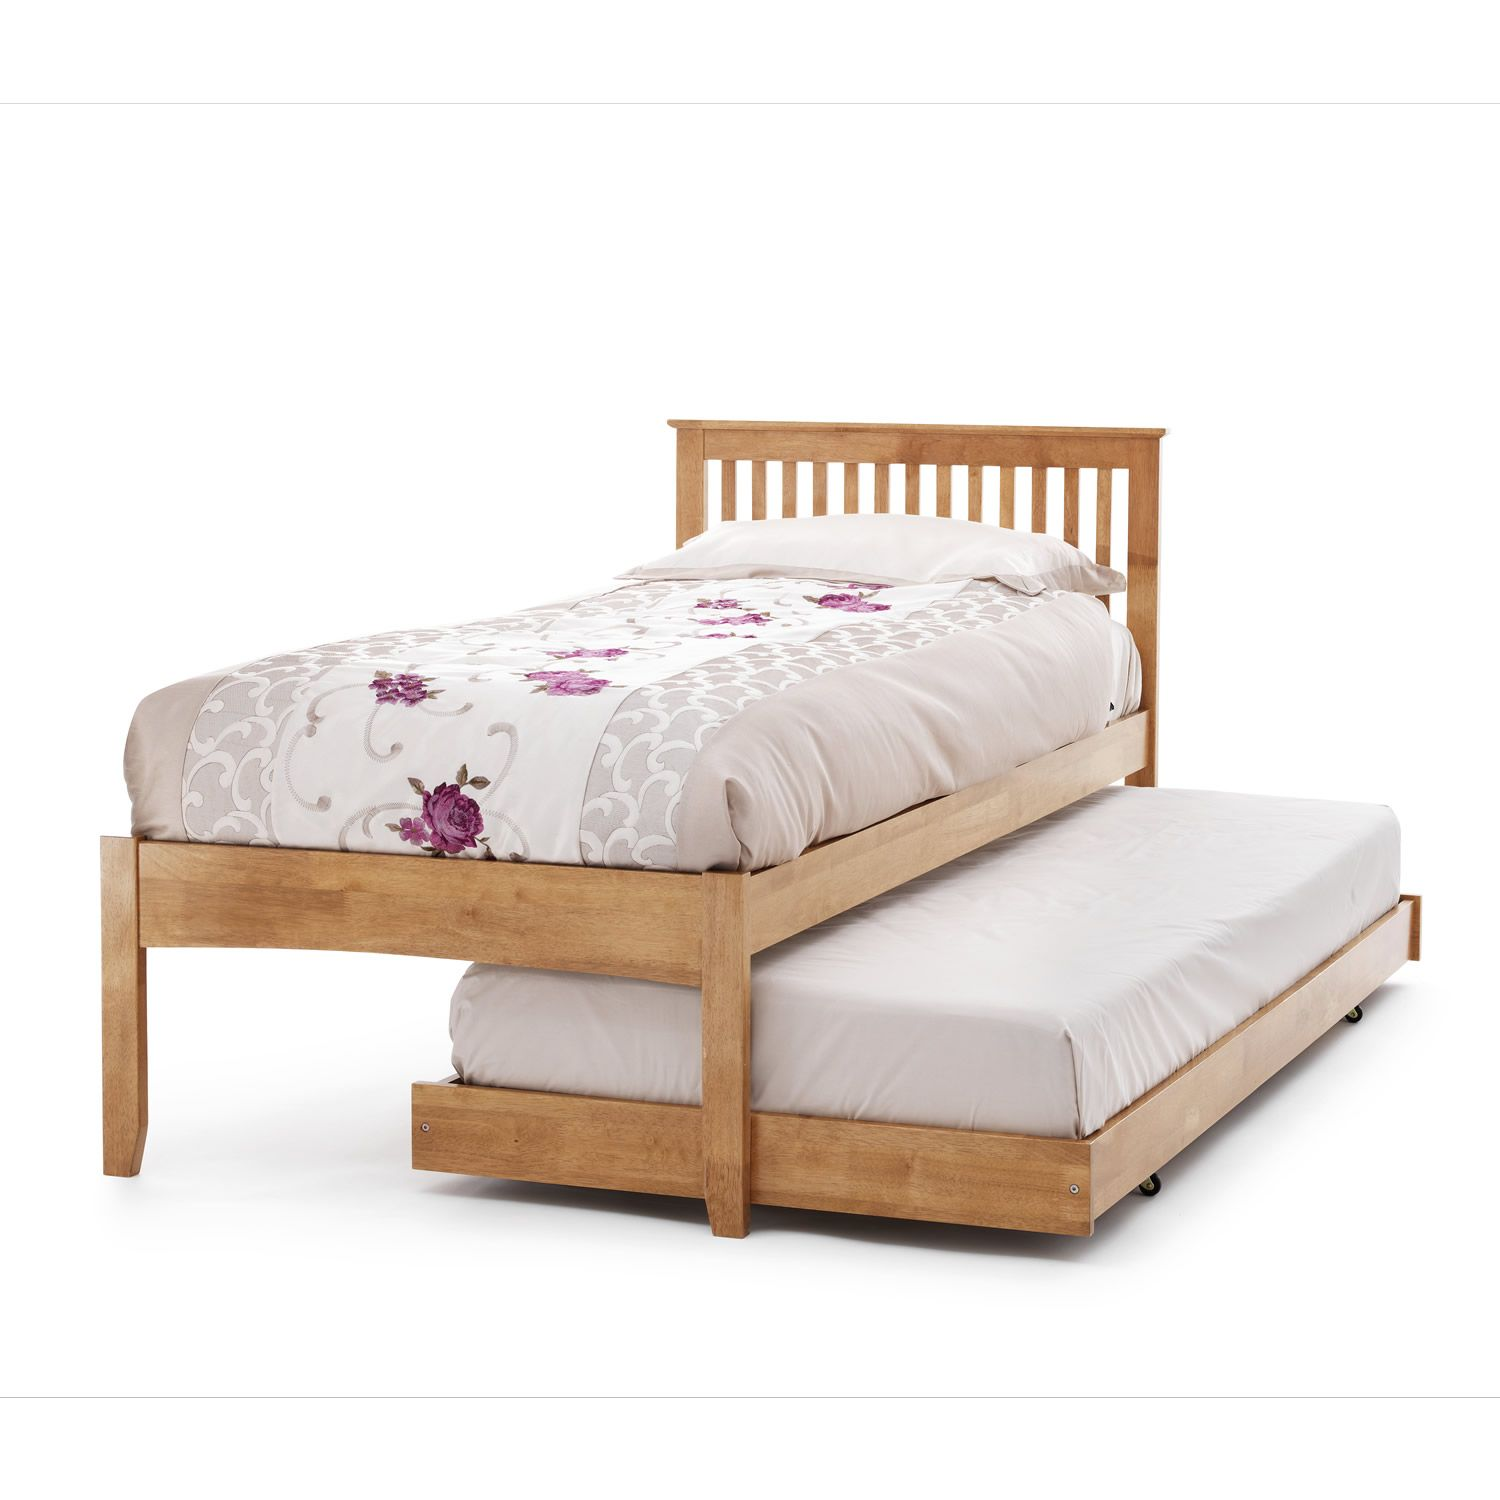 representation of pull out bed frame selections  bedroom design  - representation of pull out bed frame selections